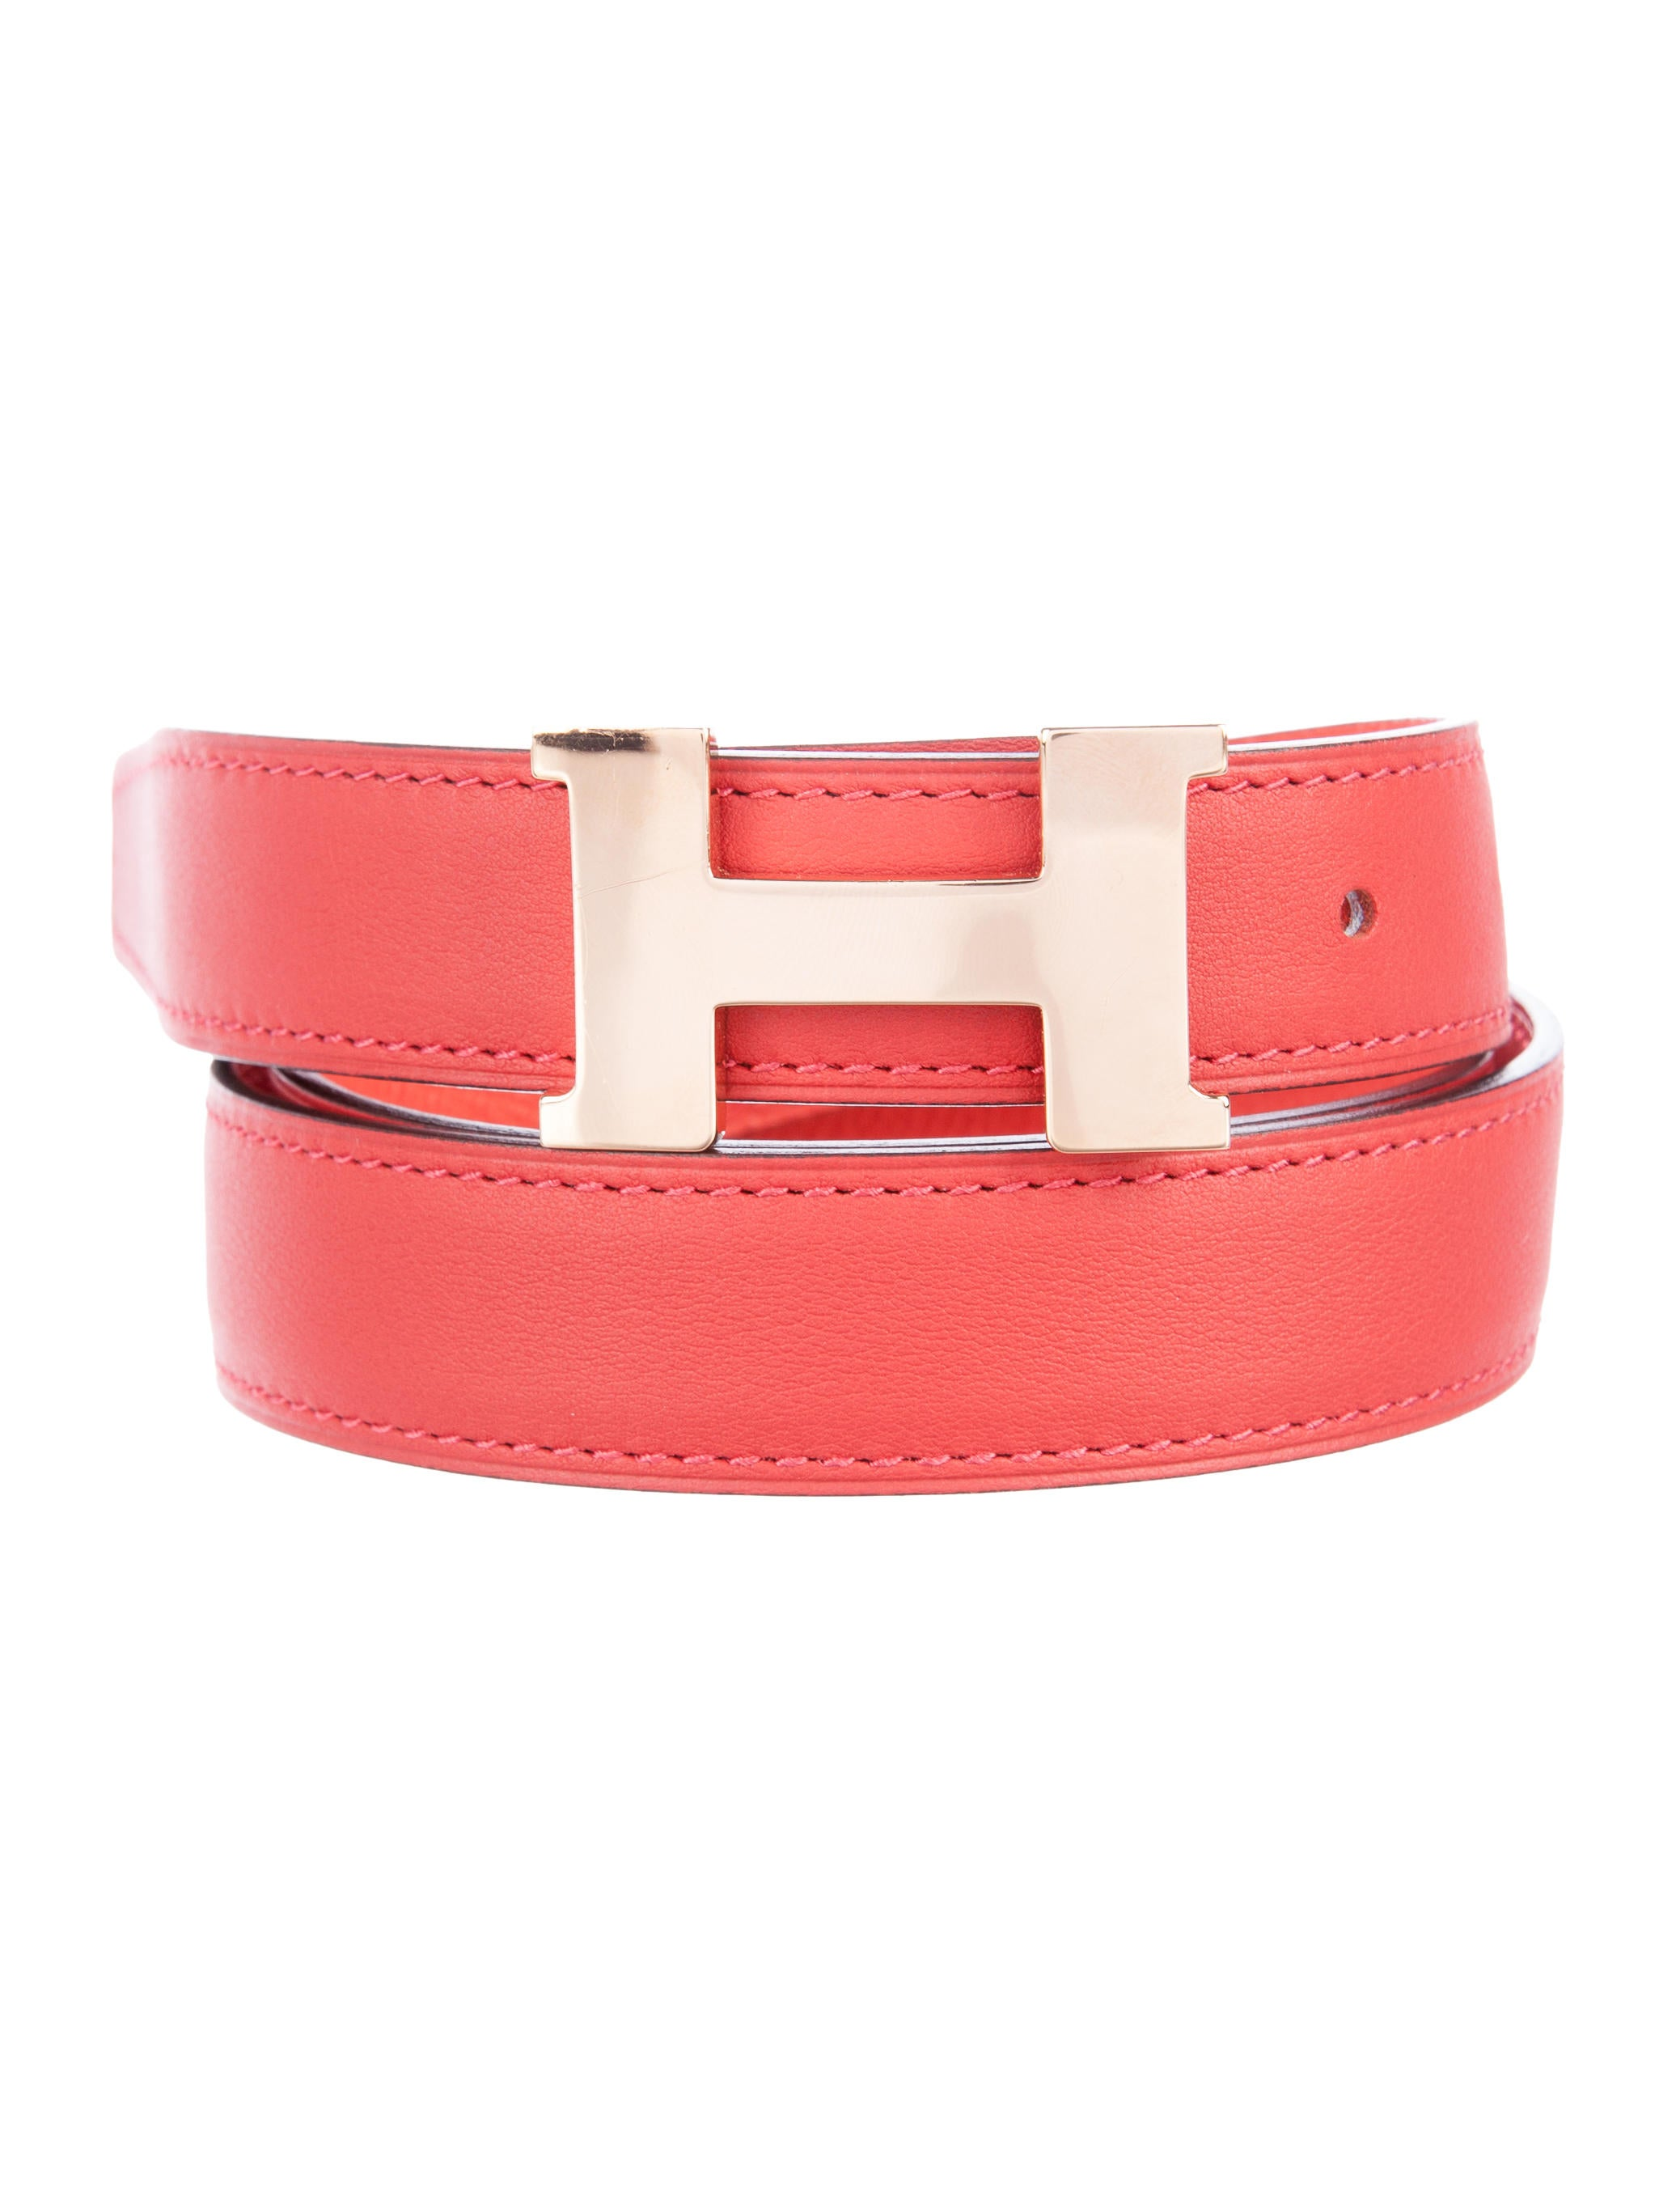 Herm232s 2015 Reversible Mini Constance 24mm Belt Kit  : HER1036121enlarged from www.therealreal.com size 2072 x 2734 jpeg 248kB